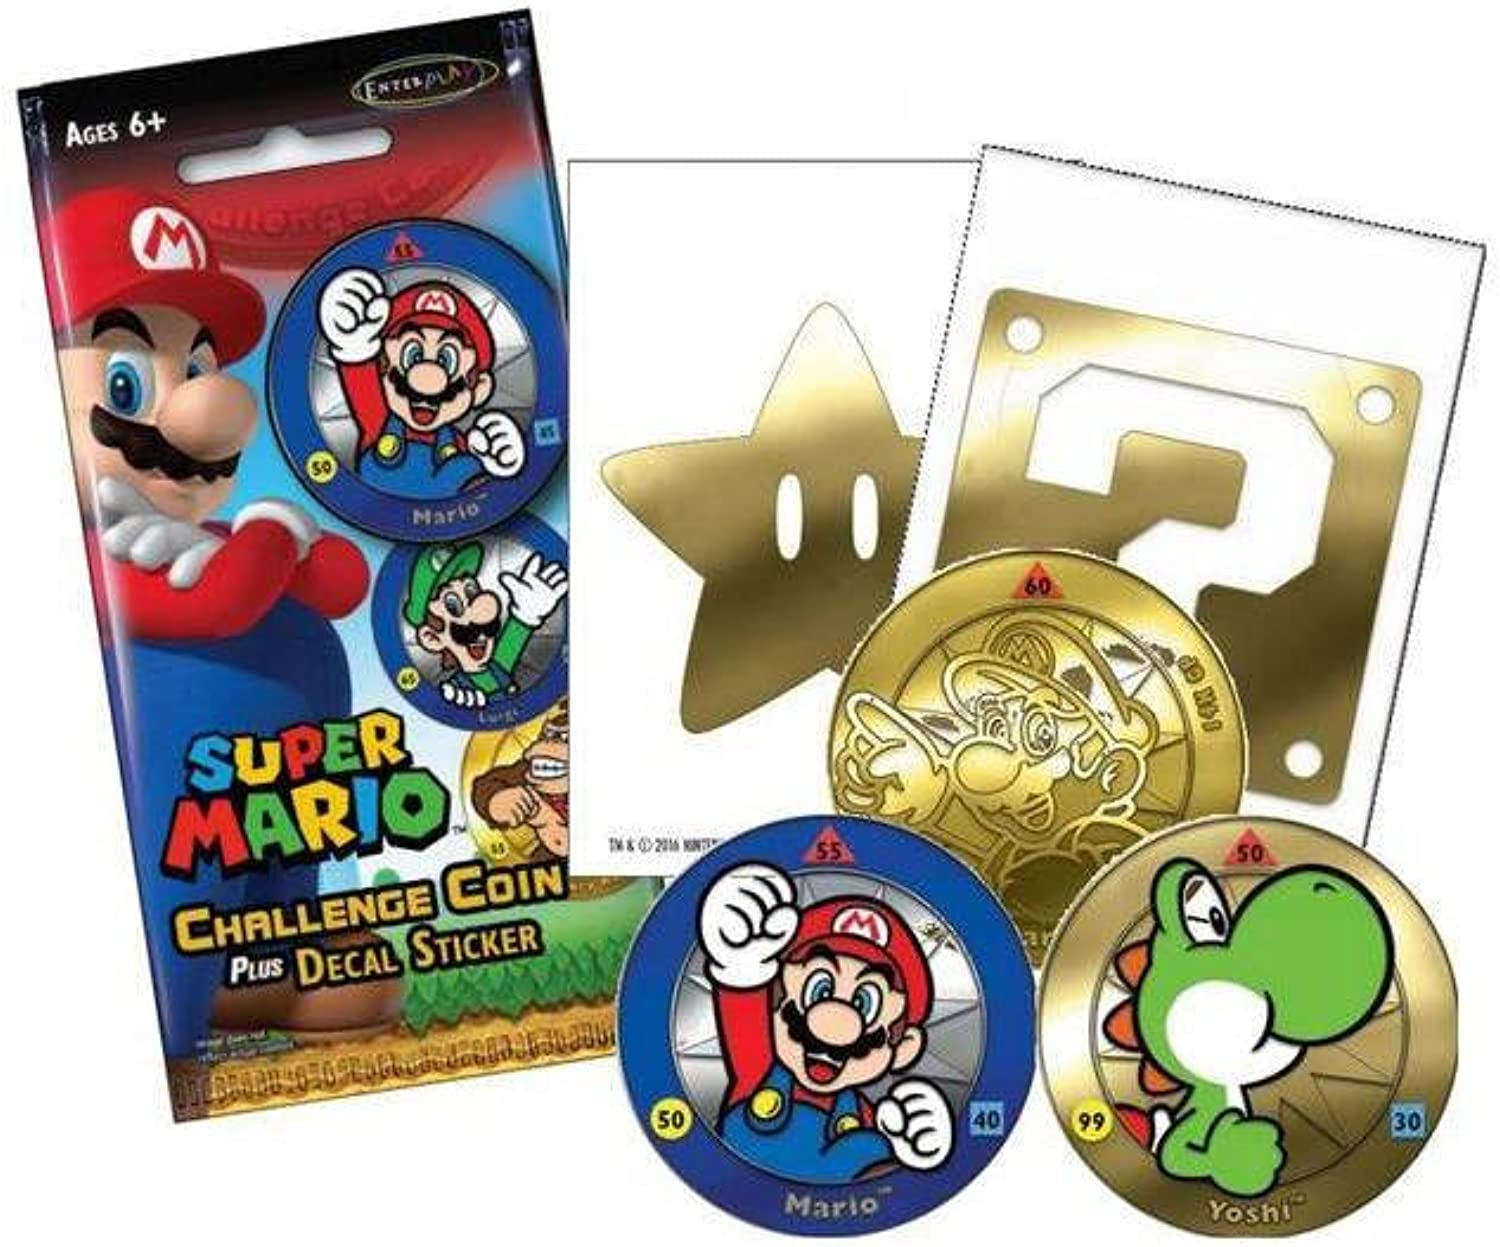 Super Mario Challenge Coin Packs Display (24) Eplay Trading cards